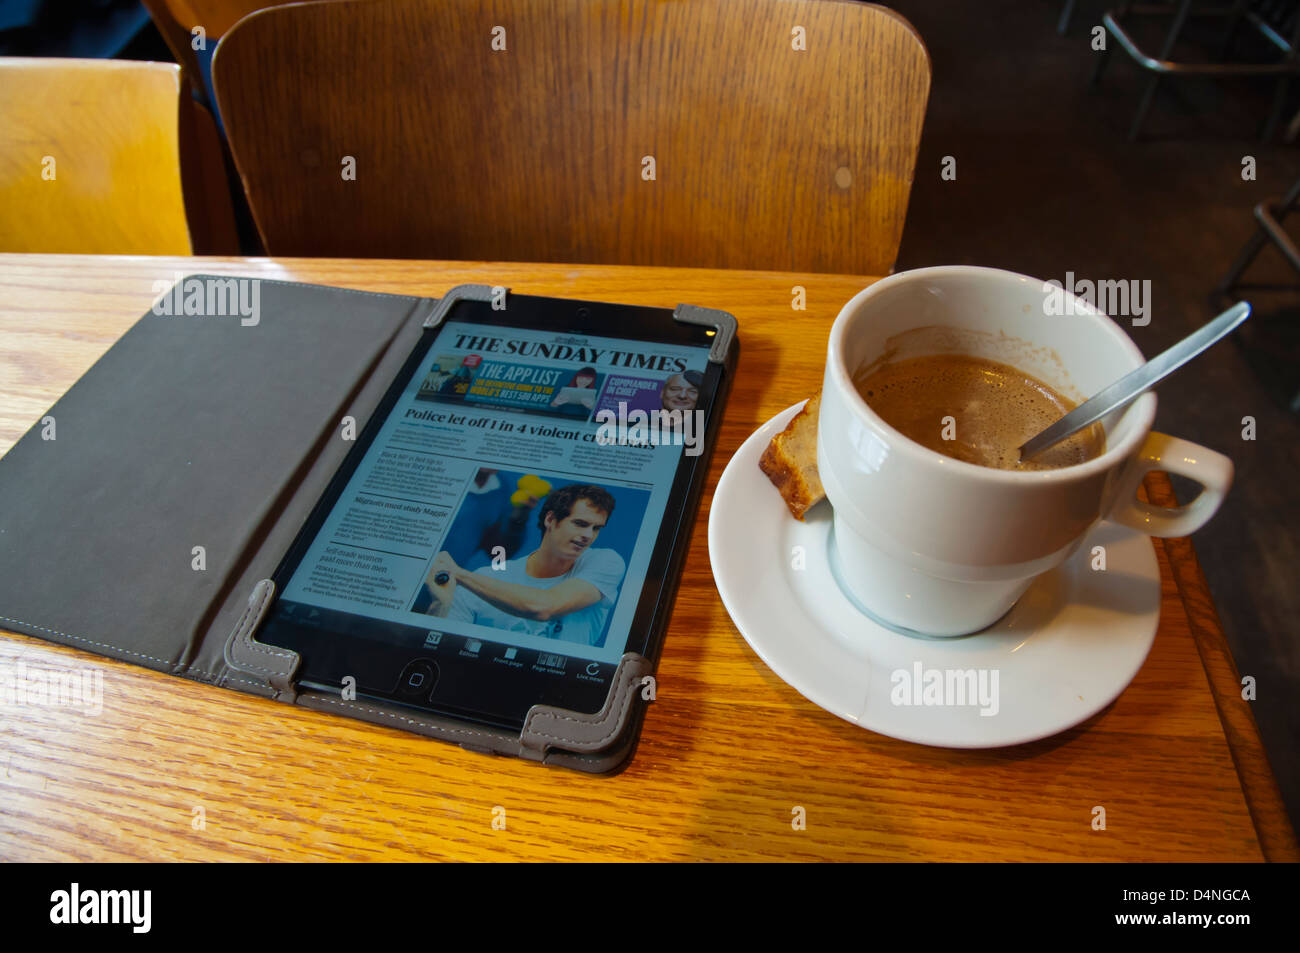 Taza de café y ipad mini con el periódico The Times Cafe Walvis en Dansaert district central Bruselas Imagen De Stock